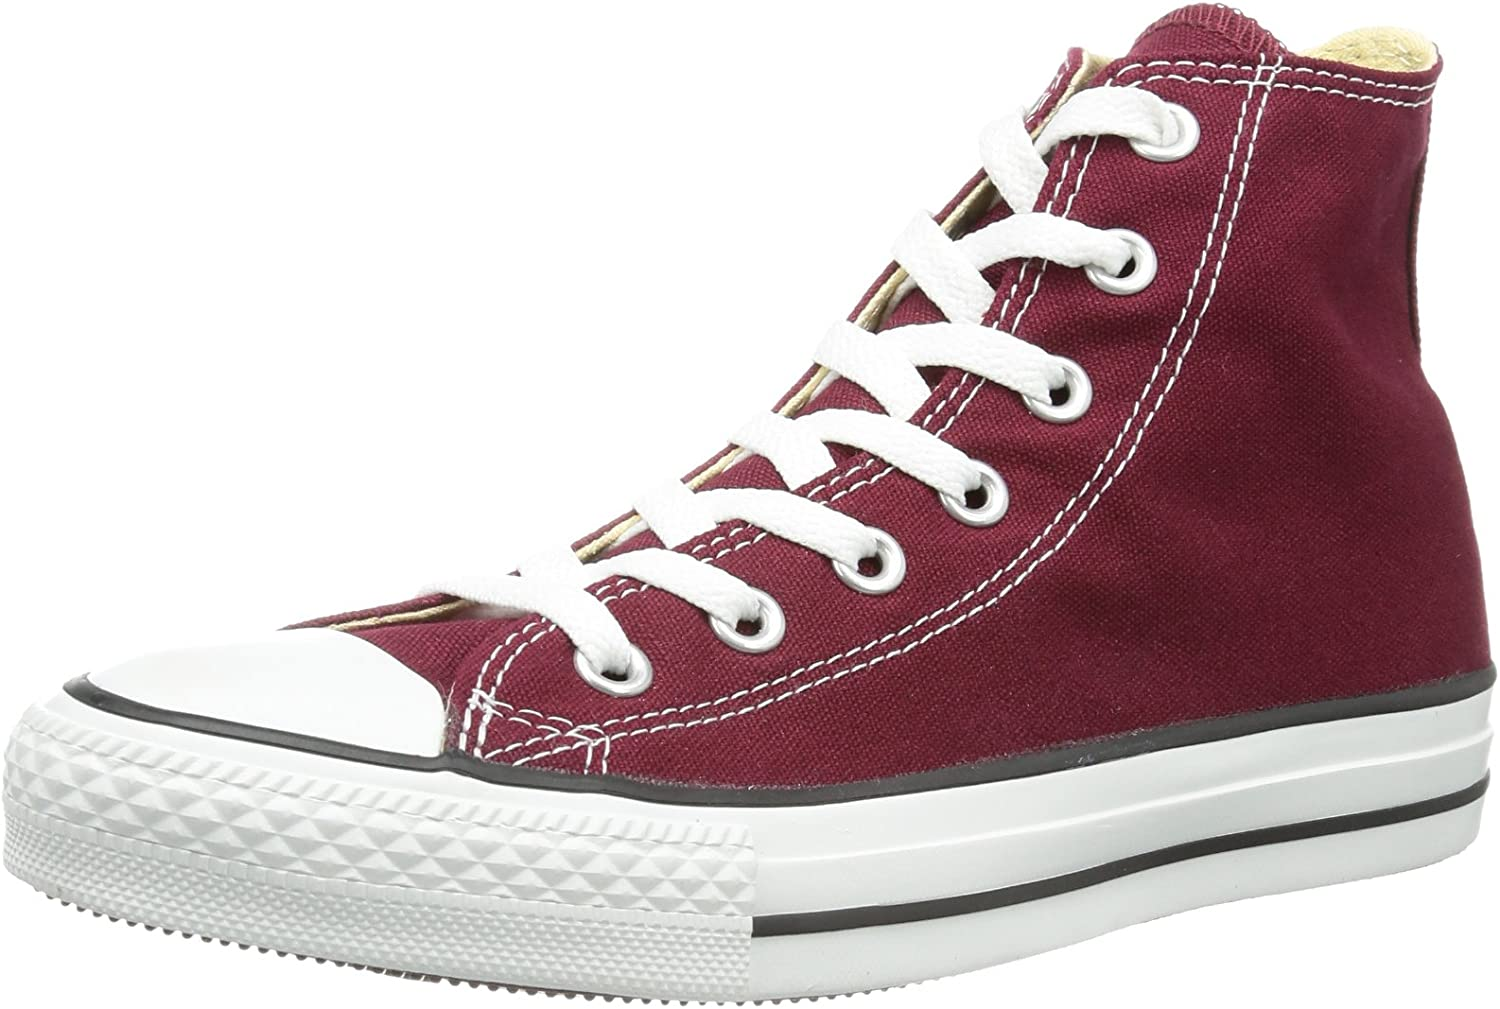 Converse Unisex Adults' Chuck Taylor All Star Hi Low-Top Sneakers